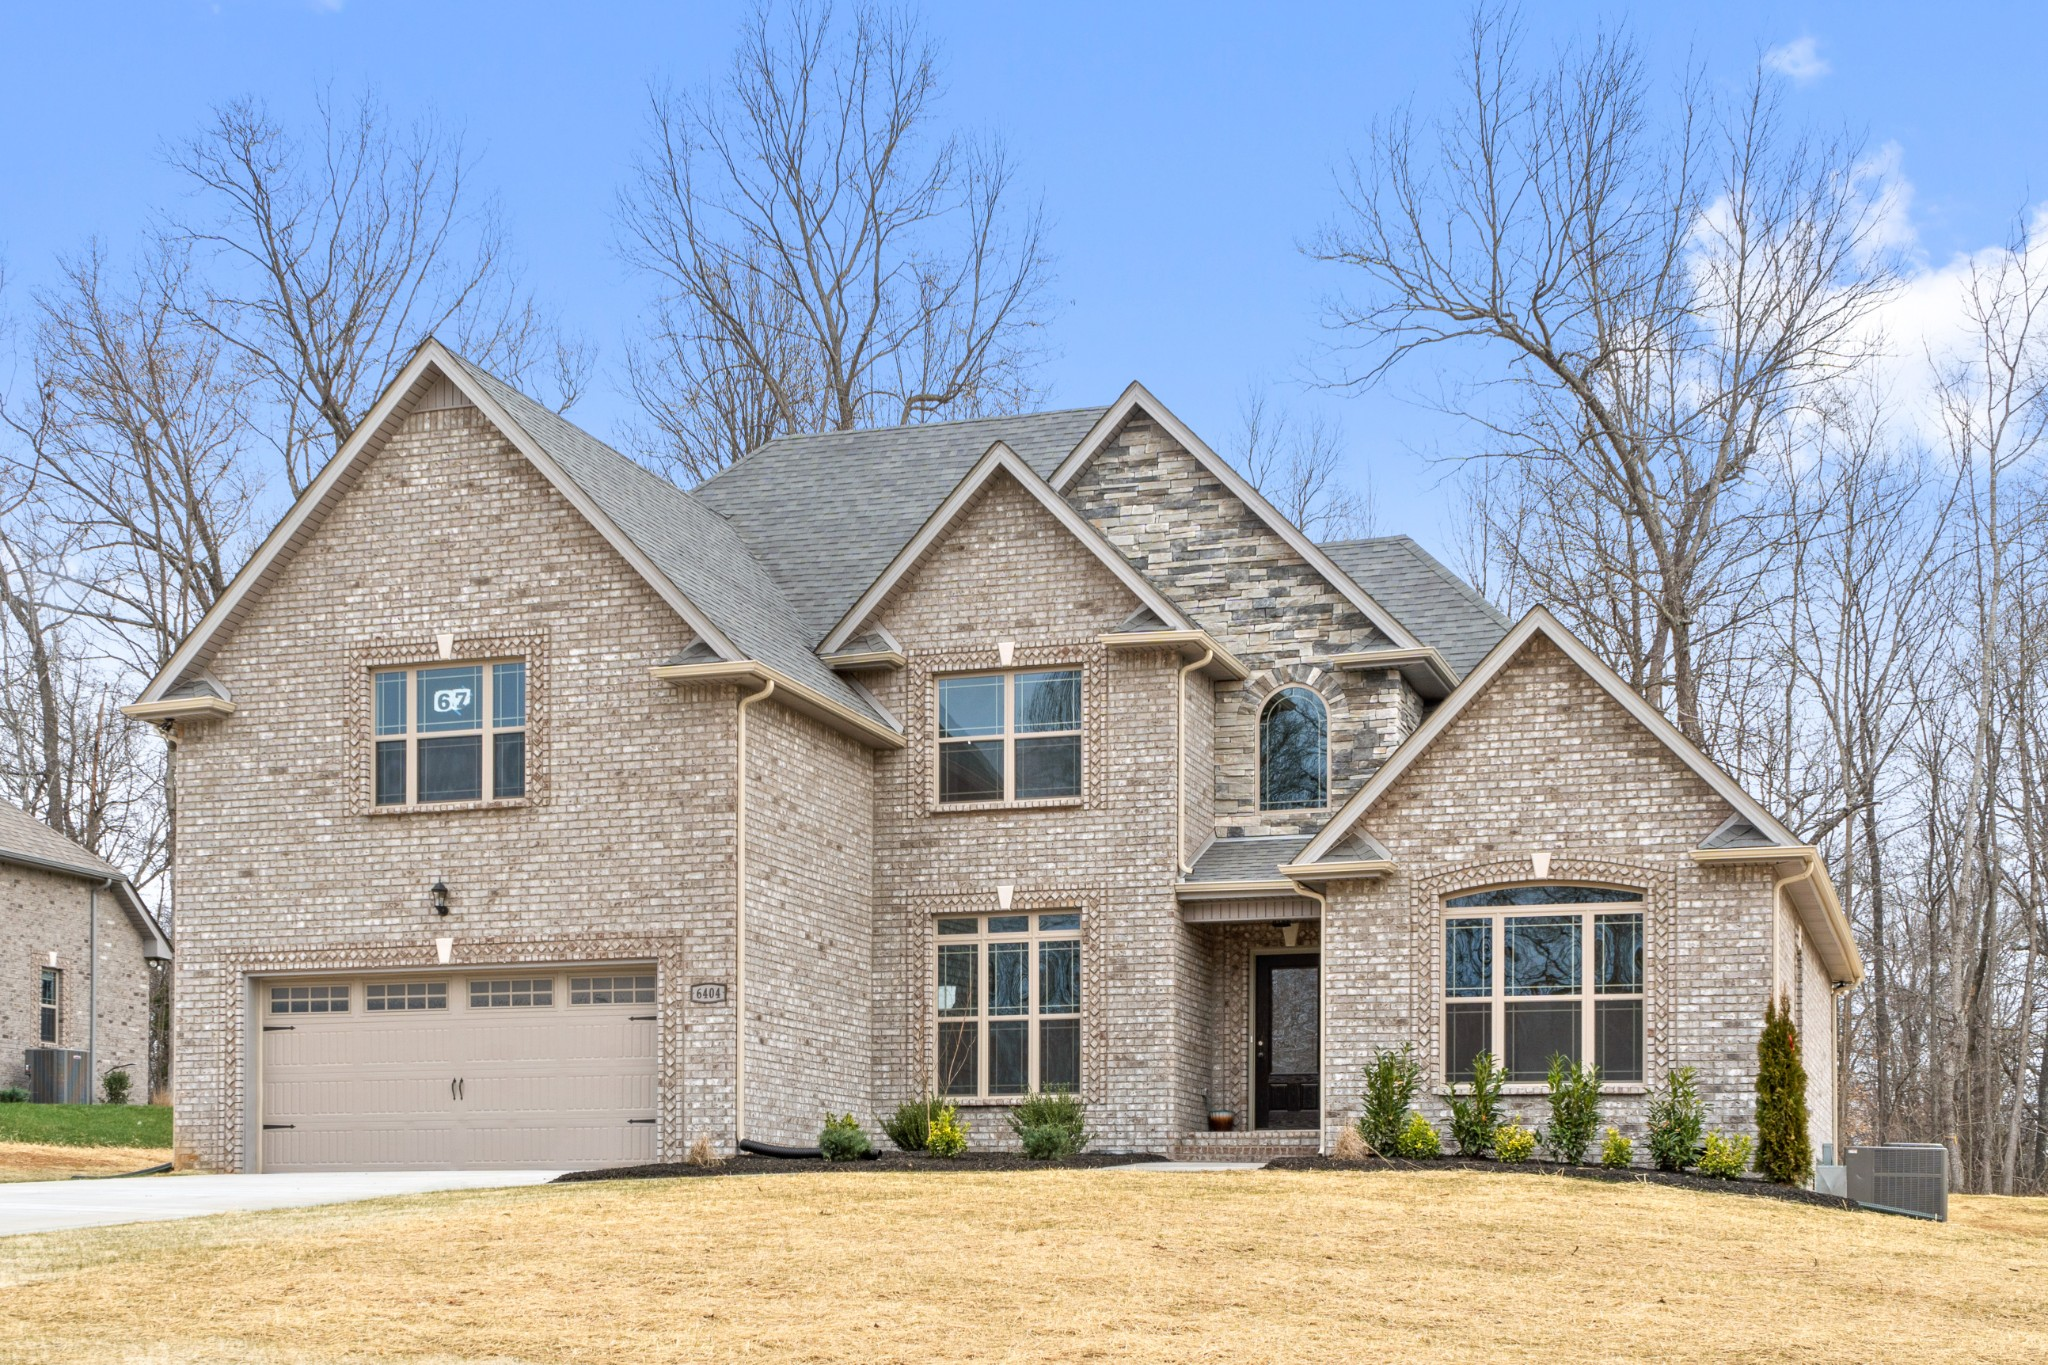 66 Terraces of Hearthstone Property Photo - Clarksville, TN real estate listing